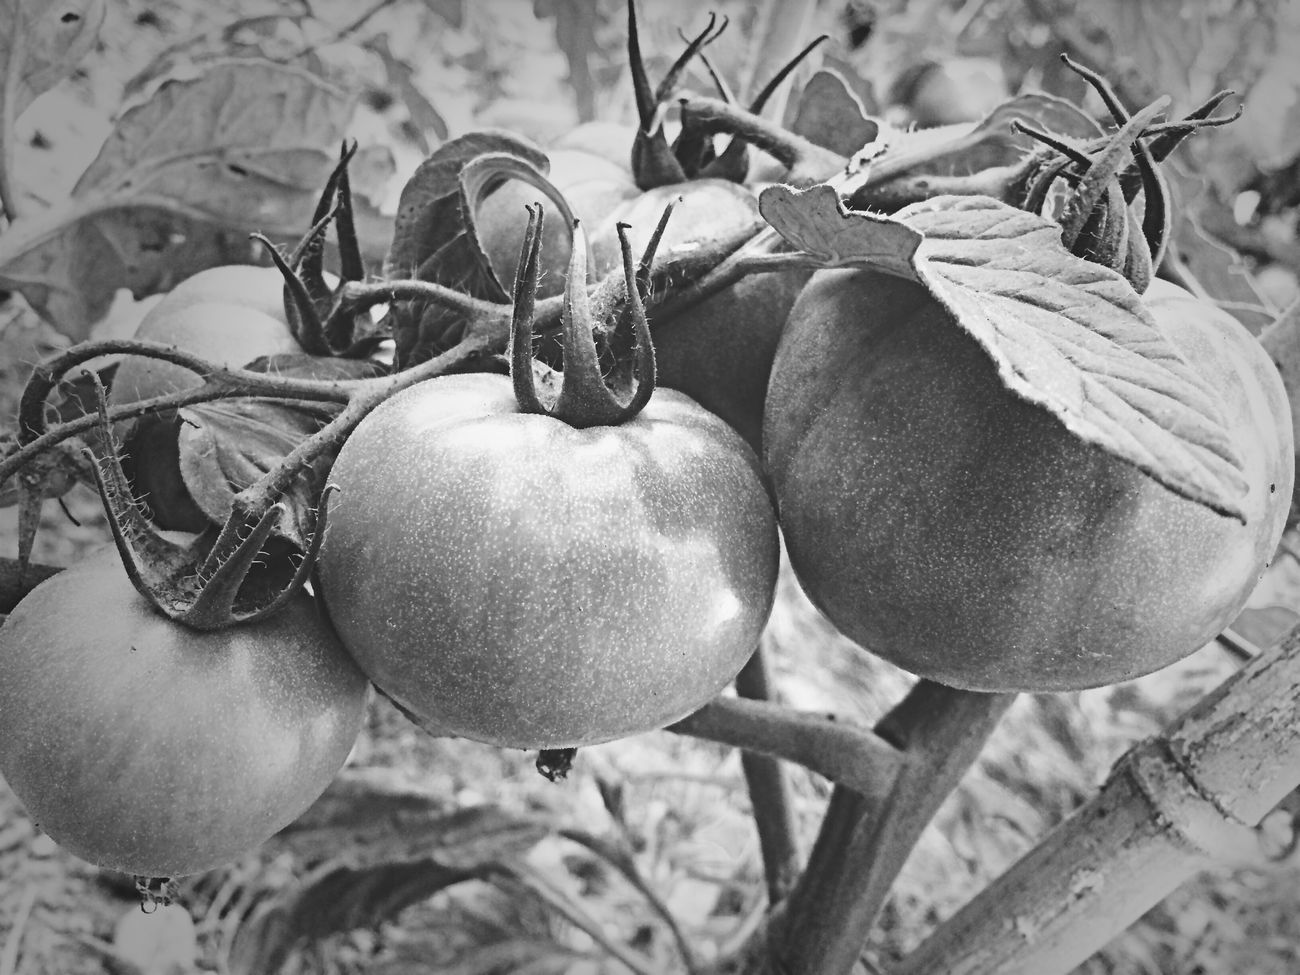 Monochrome Blackandwhite Tomato Vegetables